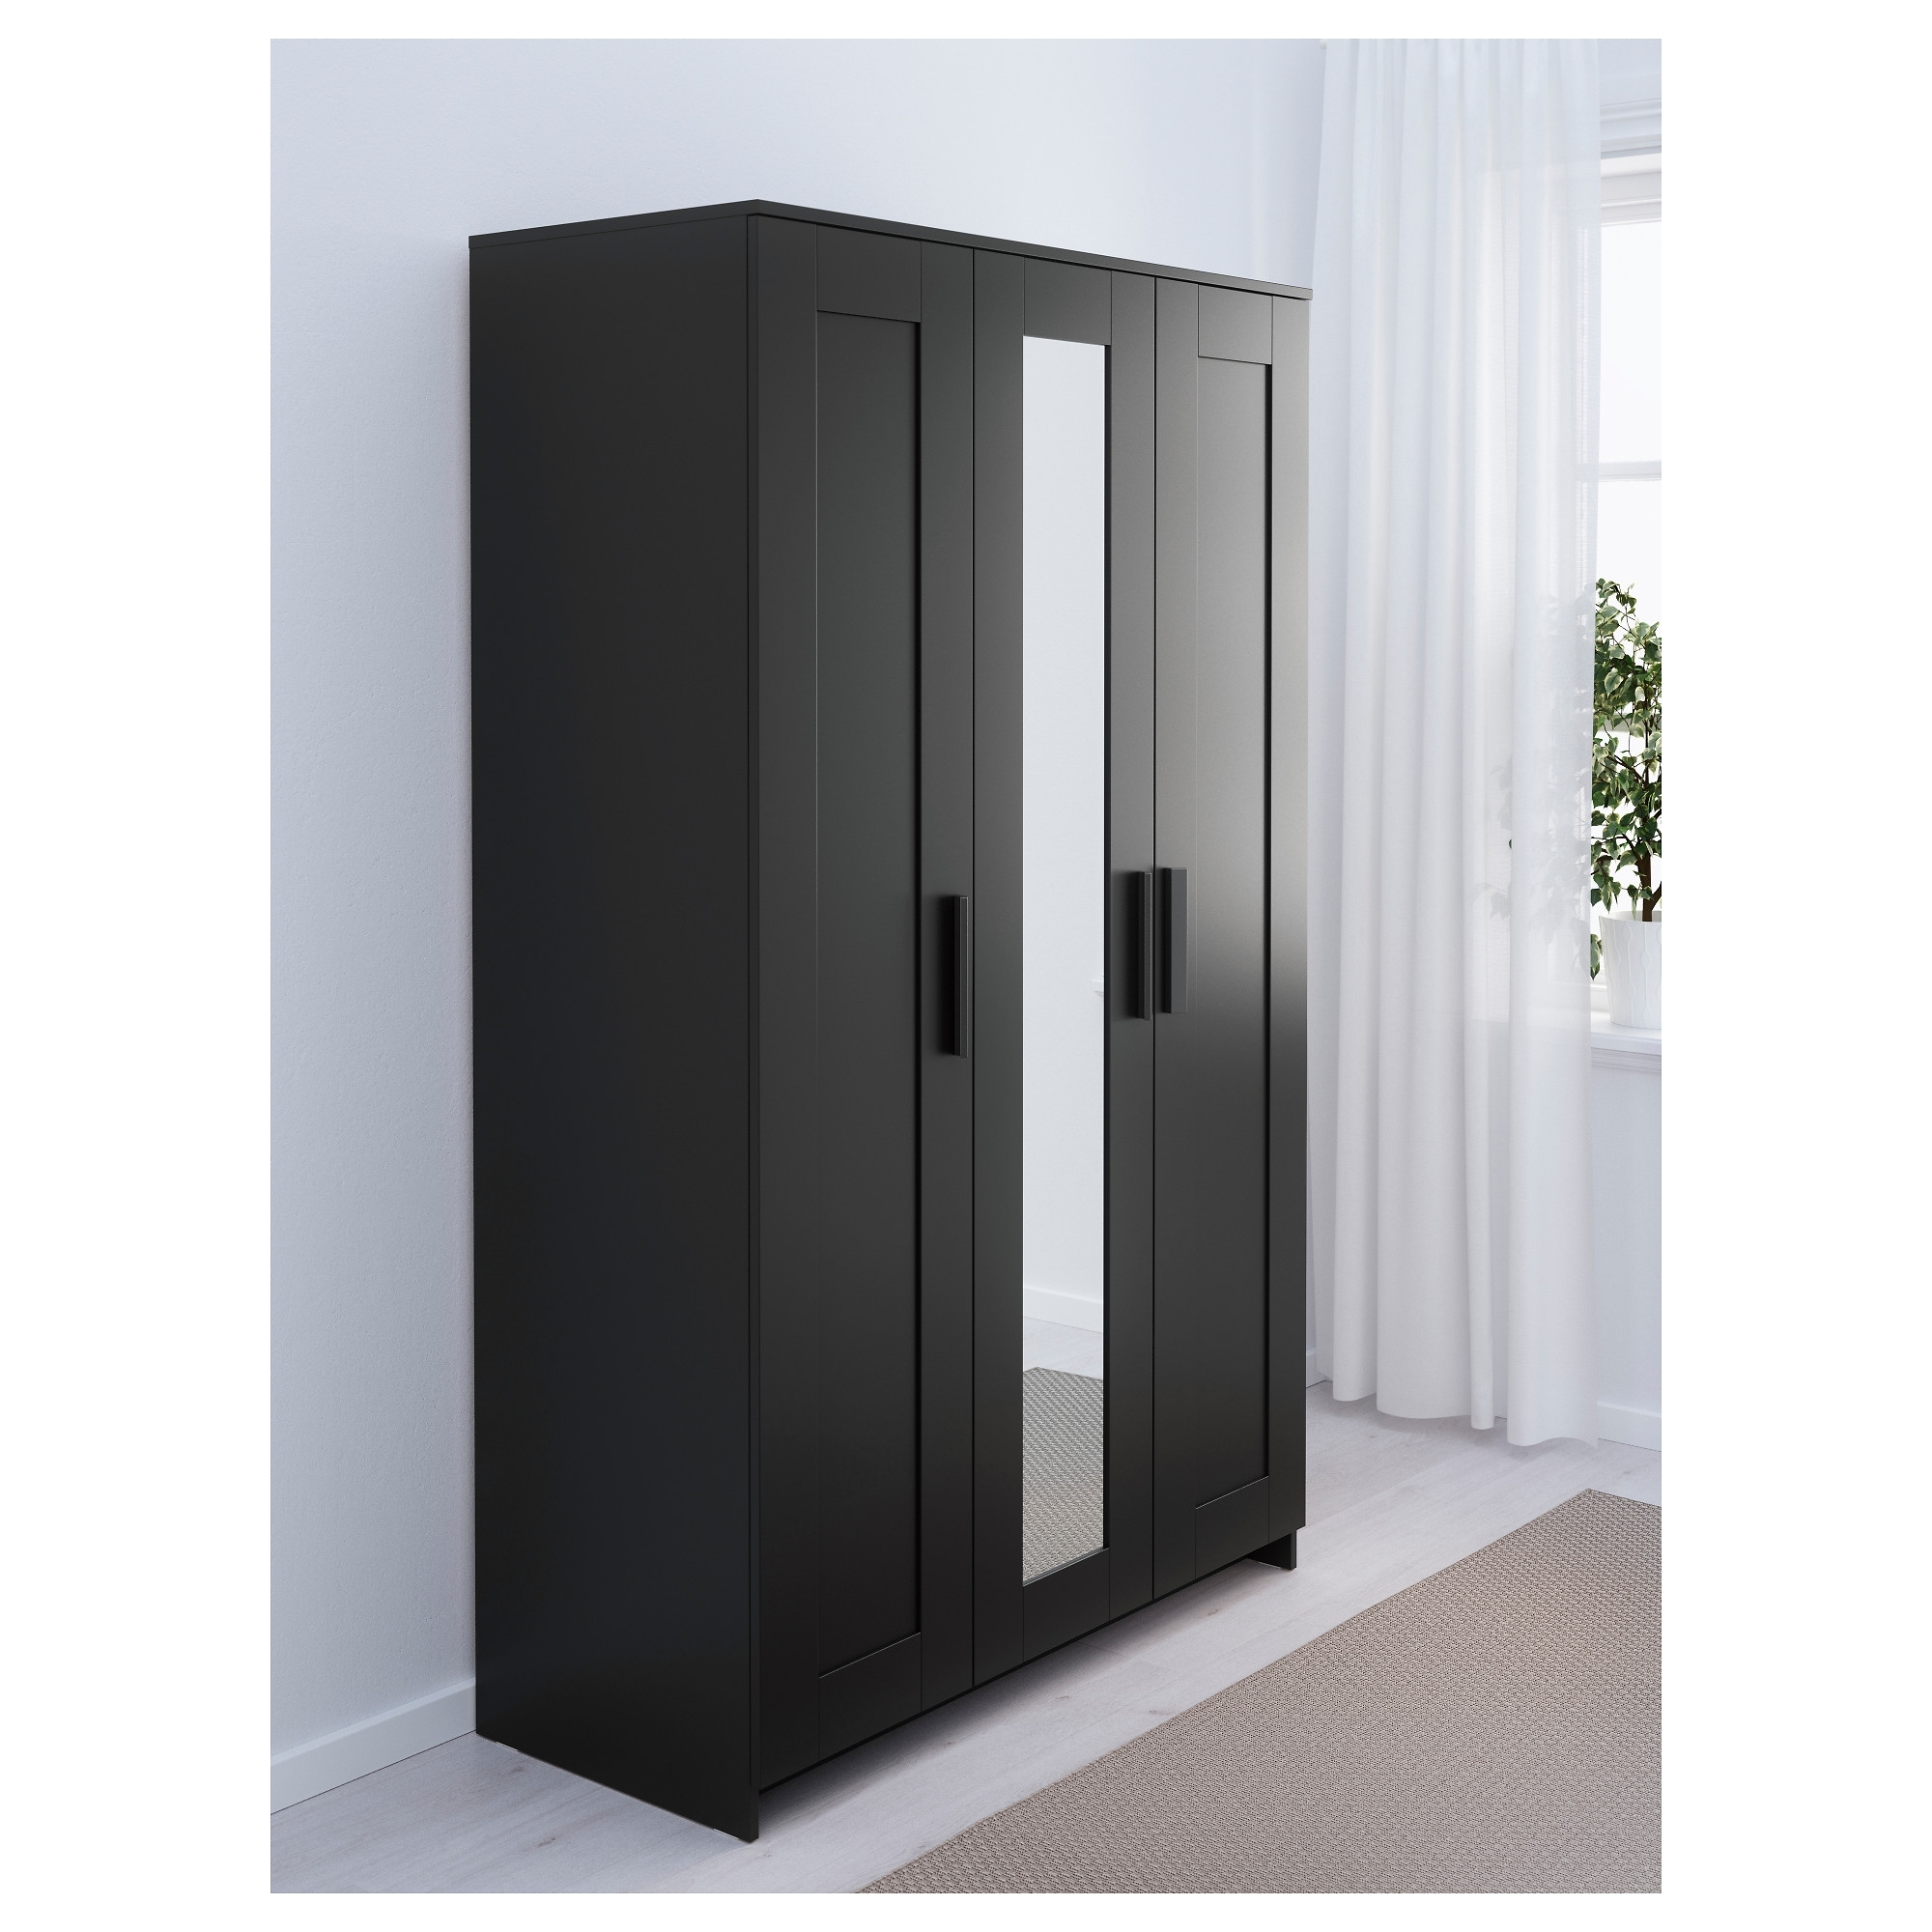 Three Door Wardrobes With Mirror Within 2018 Brimnes Wardrobe With 3 Doors – White – Ikea (View 11 of 15)